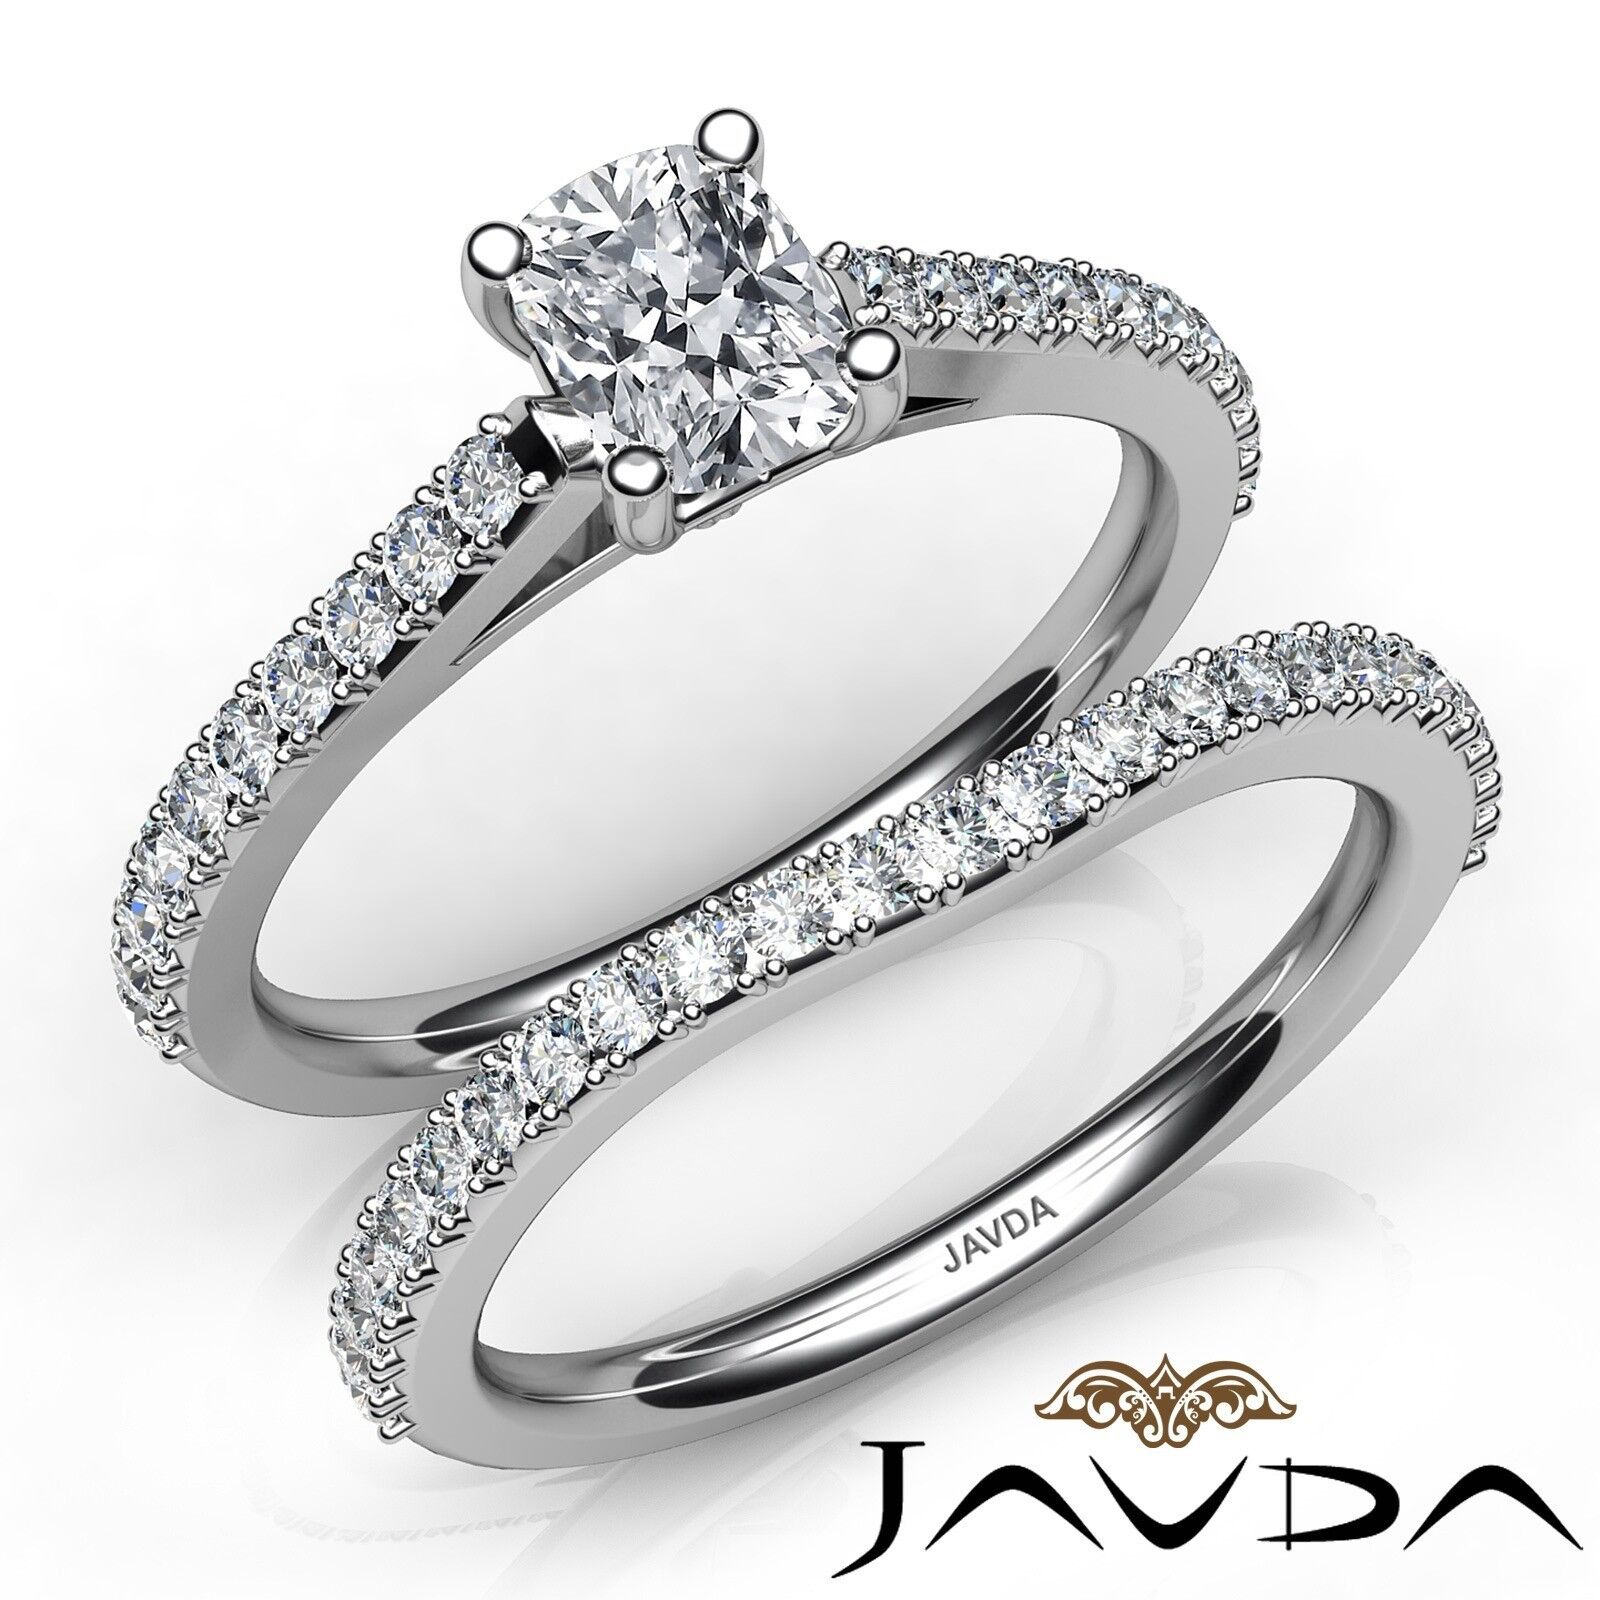 1.62ctw Double Prong Set Bridal Cushion Diamond Engagement Ring GIA H-VS2 W Gold